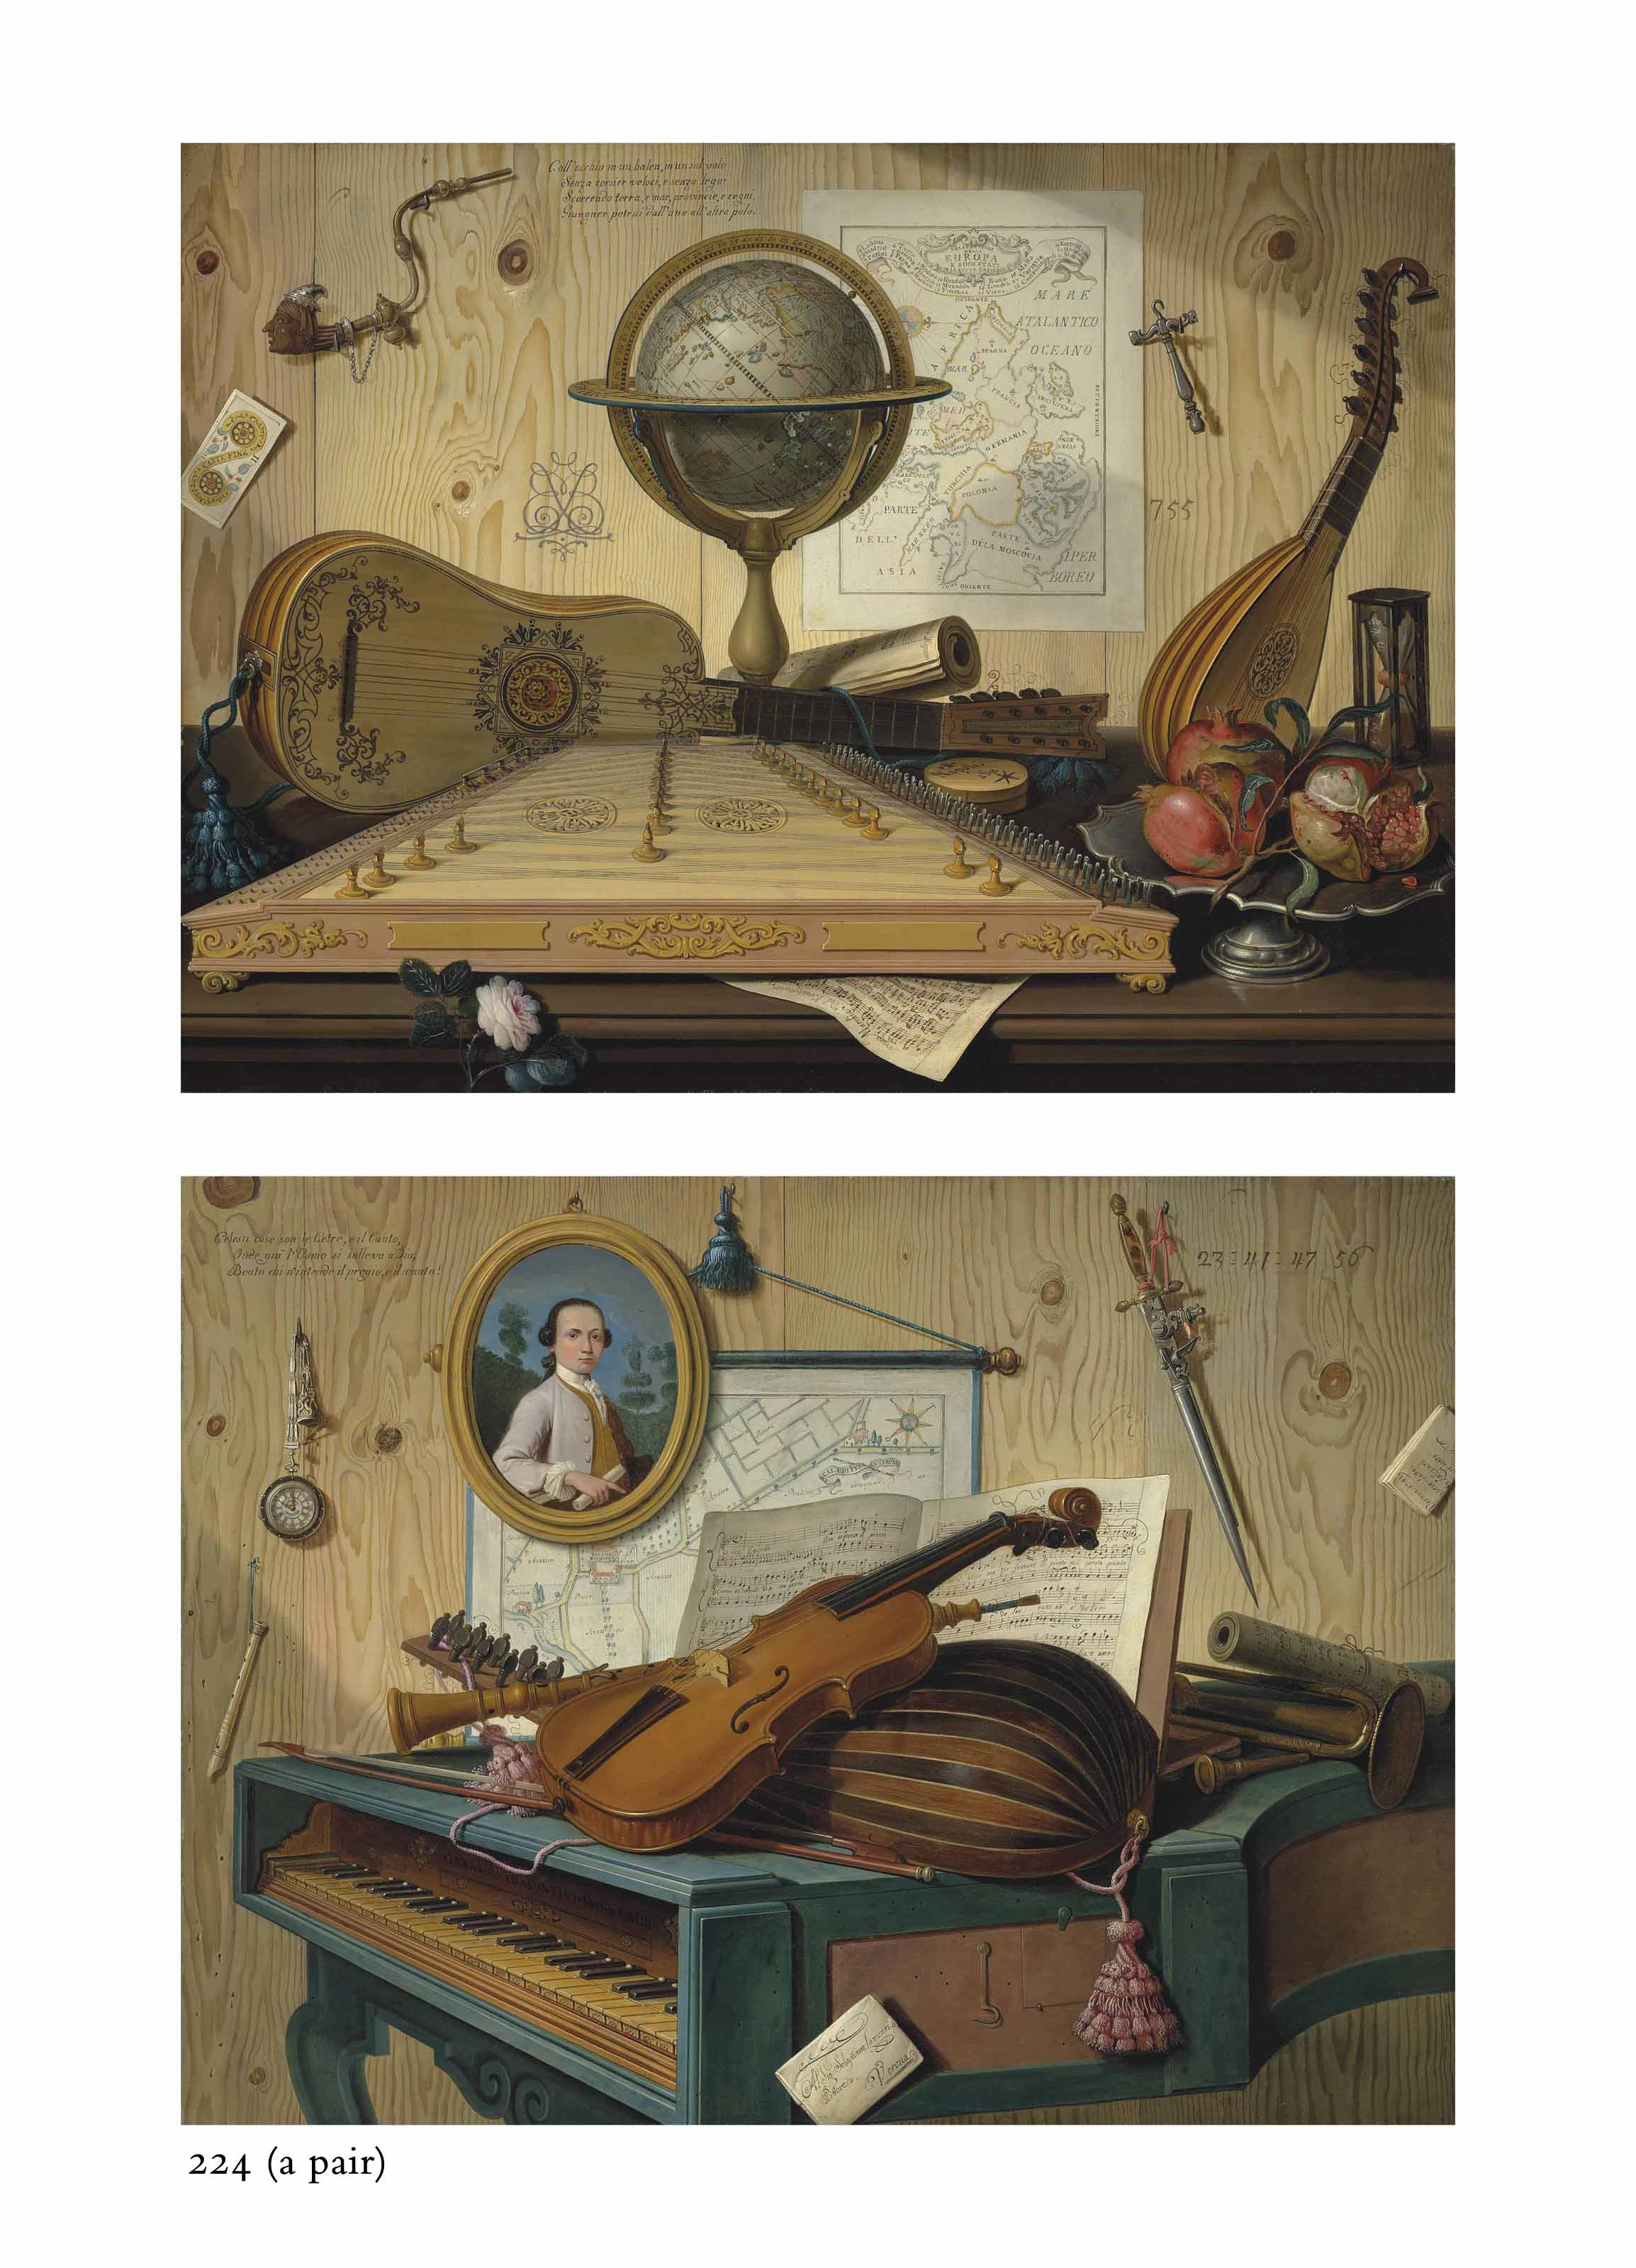 A trompe l'oeil of a zither, a guitar, a lute, a globe, with an hourglass and pewter platter with pomegranates on a wooden table, before a planked wall with a map of Europe and other objects; and A trompe l'oeil of a violin, a lute, a trumpet and an oboe on a harpsichord, before a planked wall with a portrait, a pocketwatch, a map and other objects